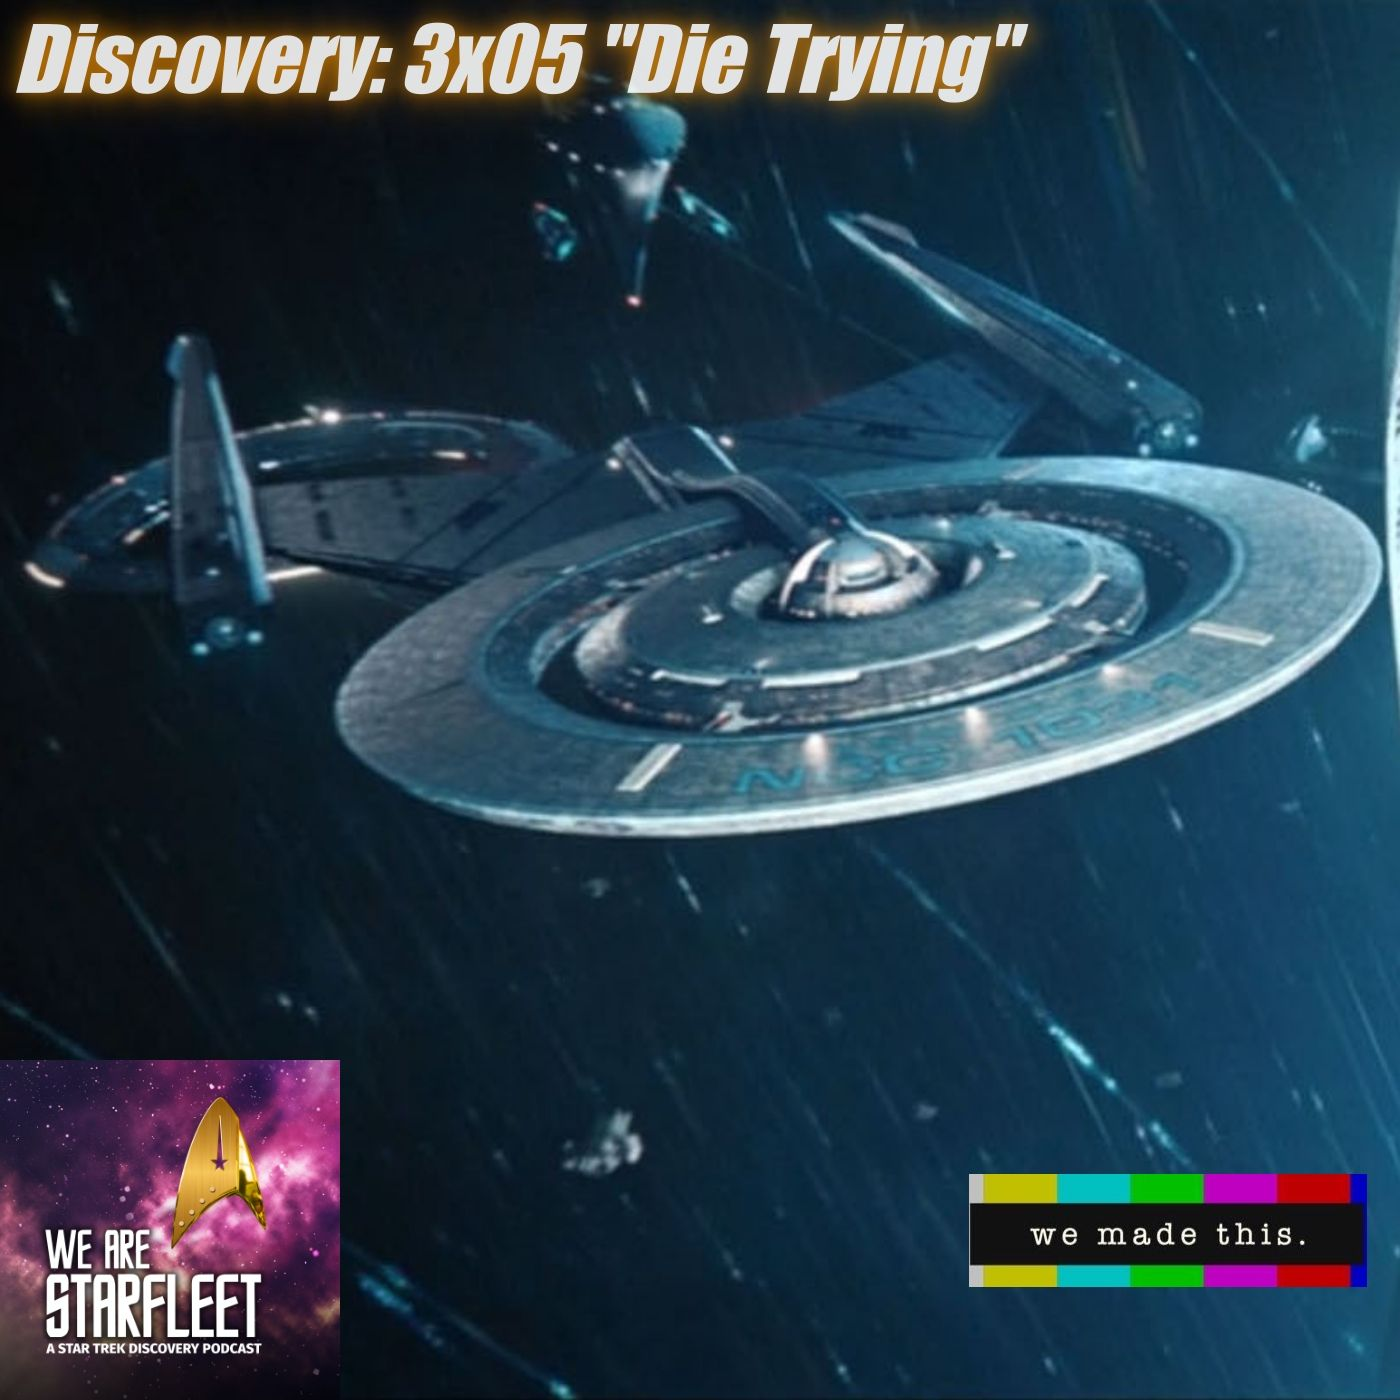 """13. Discovery: 3x05 """"Die Trying"""""""